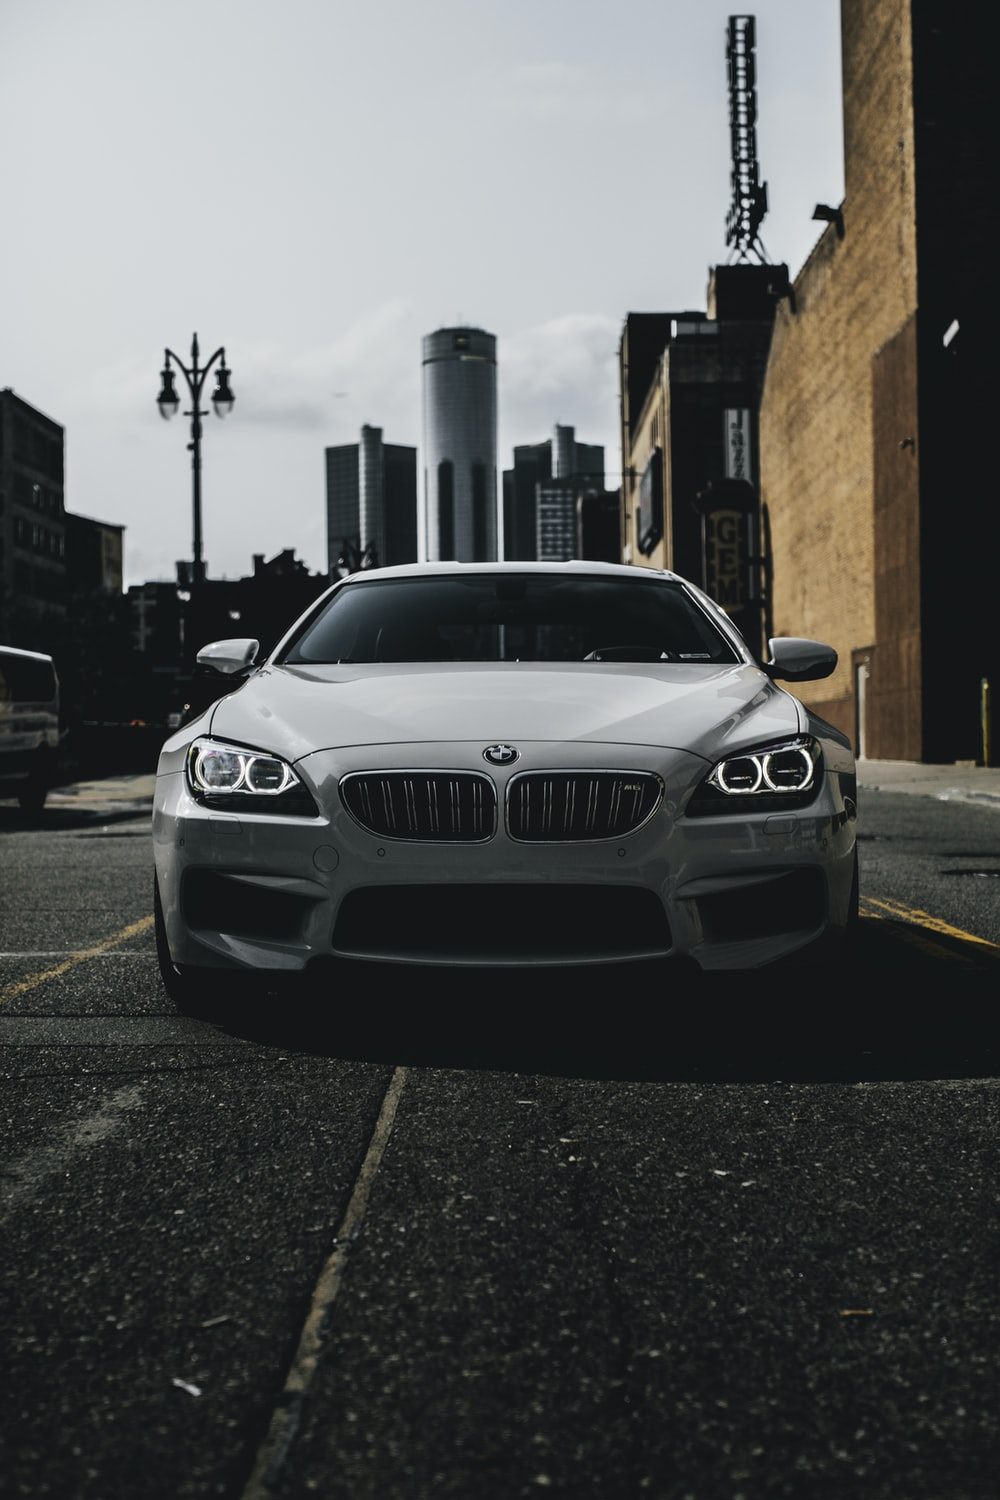 Bmw Pictures Hd Download Free Images On Unsplash